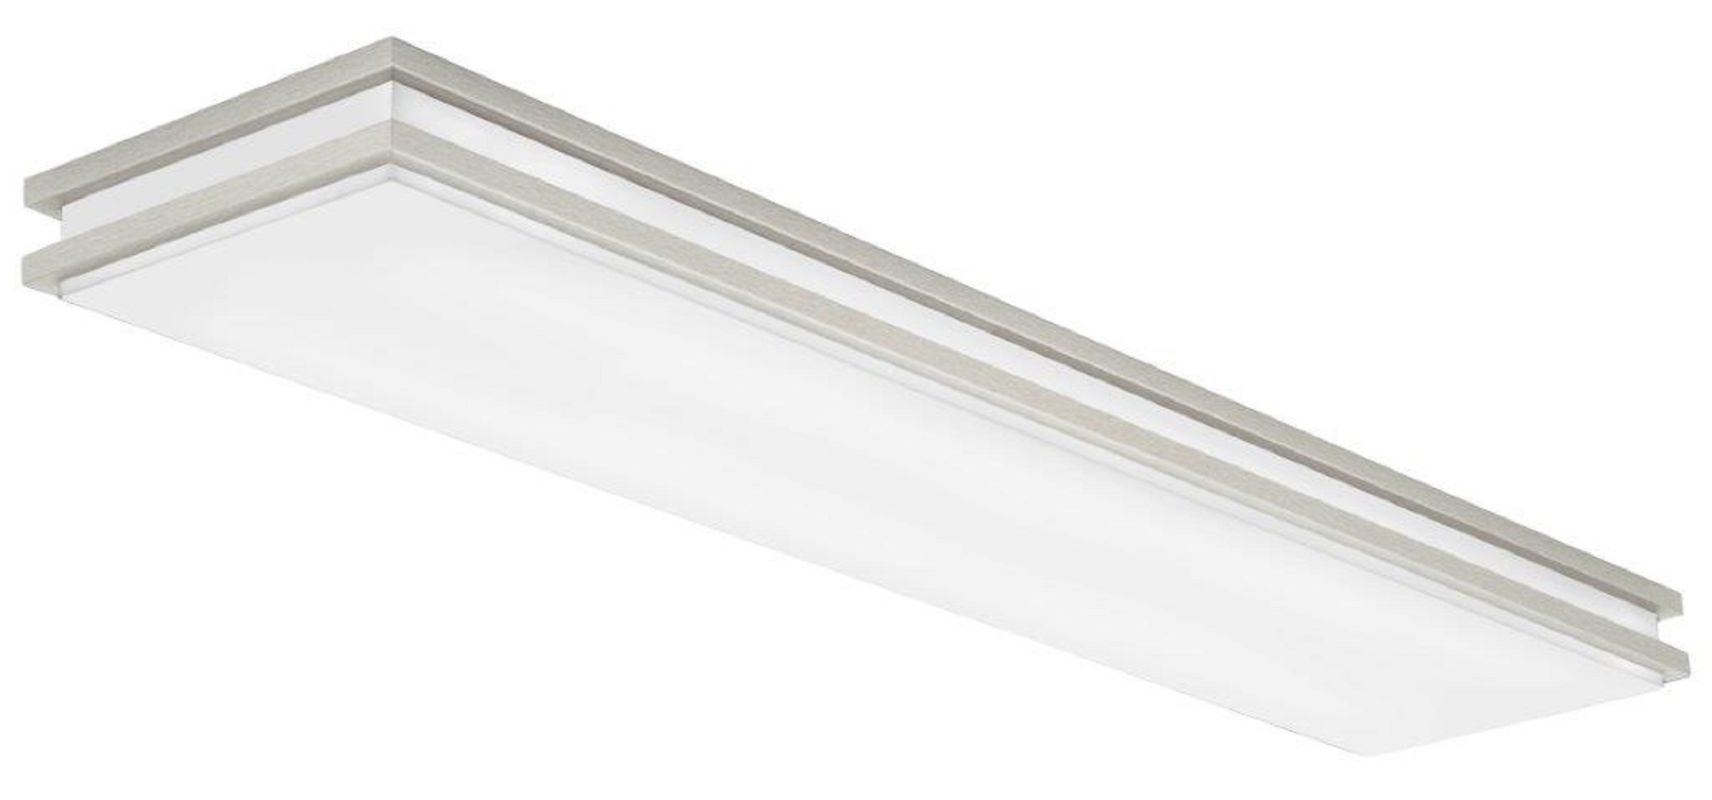 Lithonia lighting fmfl 30840 satl bn 10 flush mount 4000k led lithonia lighting fmfl 30840 satl bn 10 flush mount 4000k led ceiling fixture brushed nickel mozeypictures Image collections